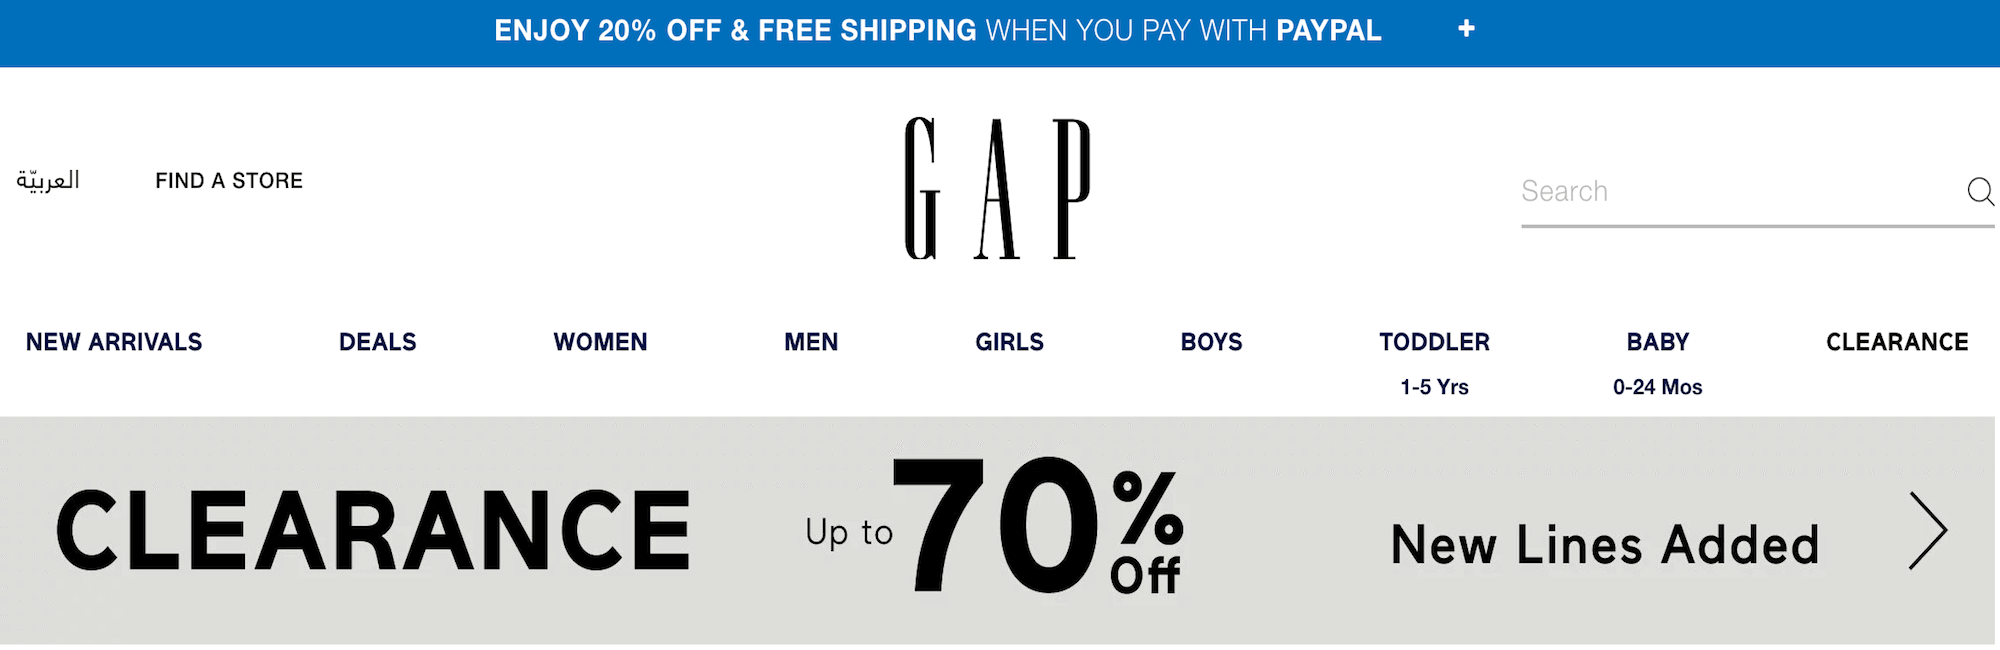 Gap Discount Code & Offers